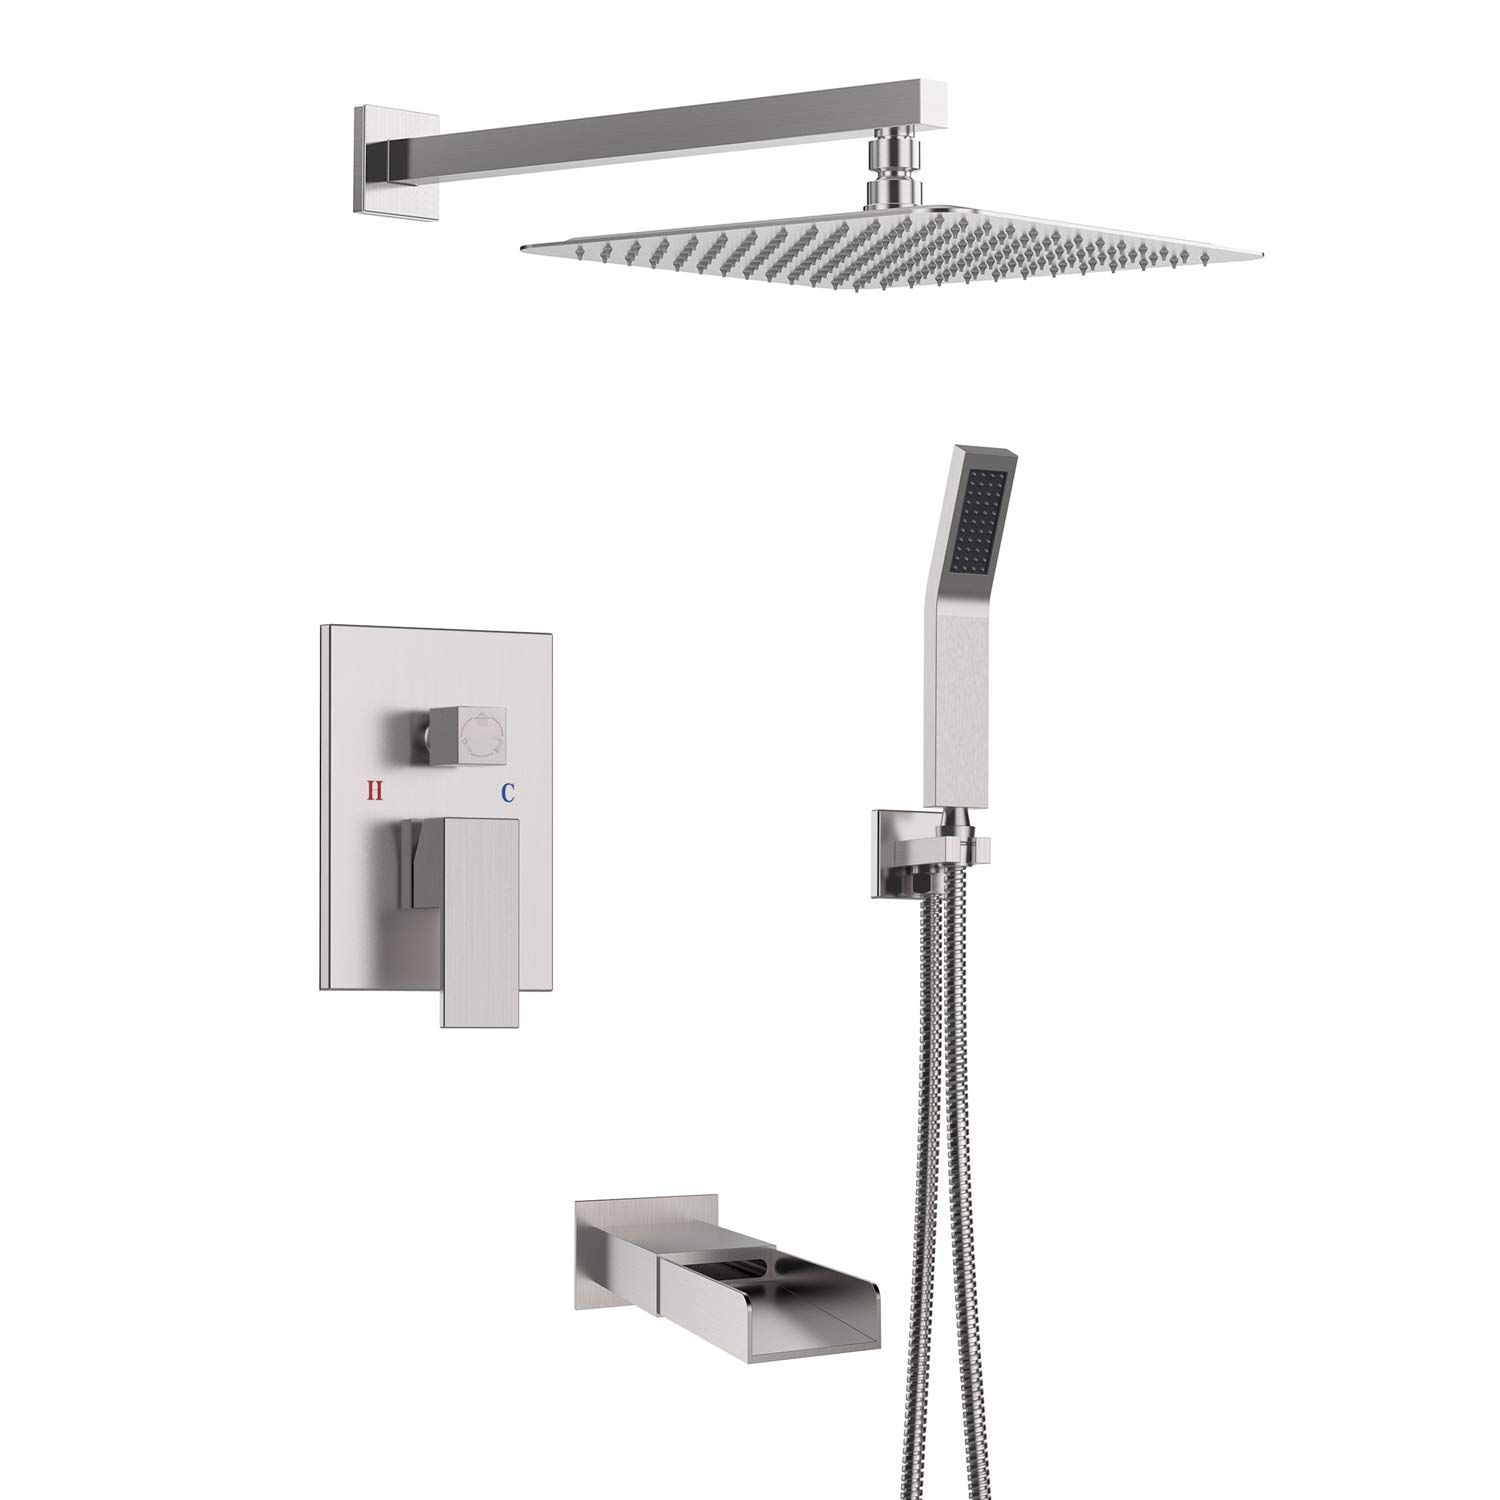 Sr Sun Rise Bathroom Luxury Rain Mixer Shower Tub Spout Combo Set Wall Mounted Rainfall Shower Head System Brushed Shower Tub Rainfall Shower Head Shower Heads